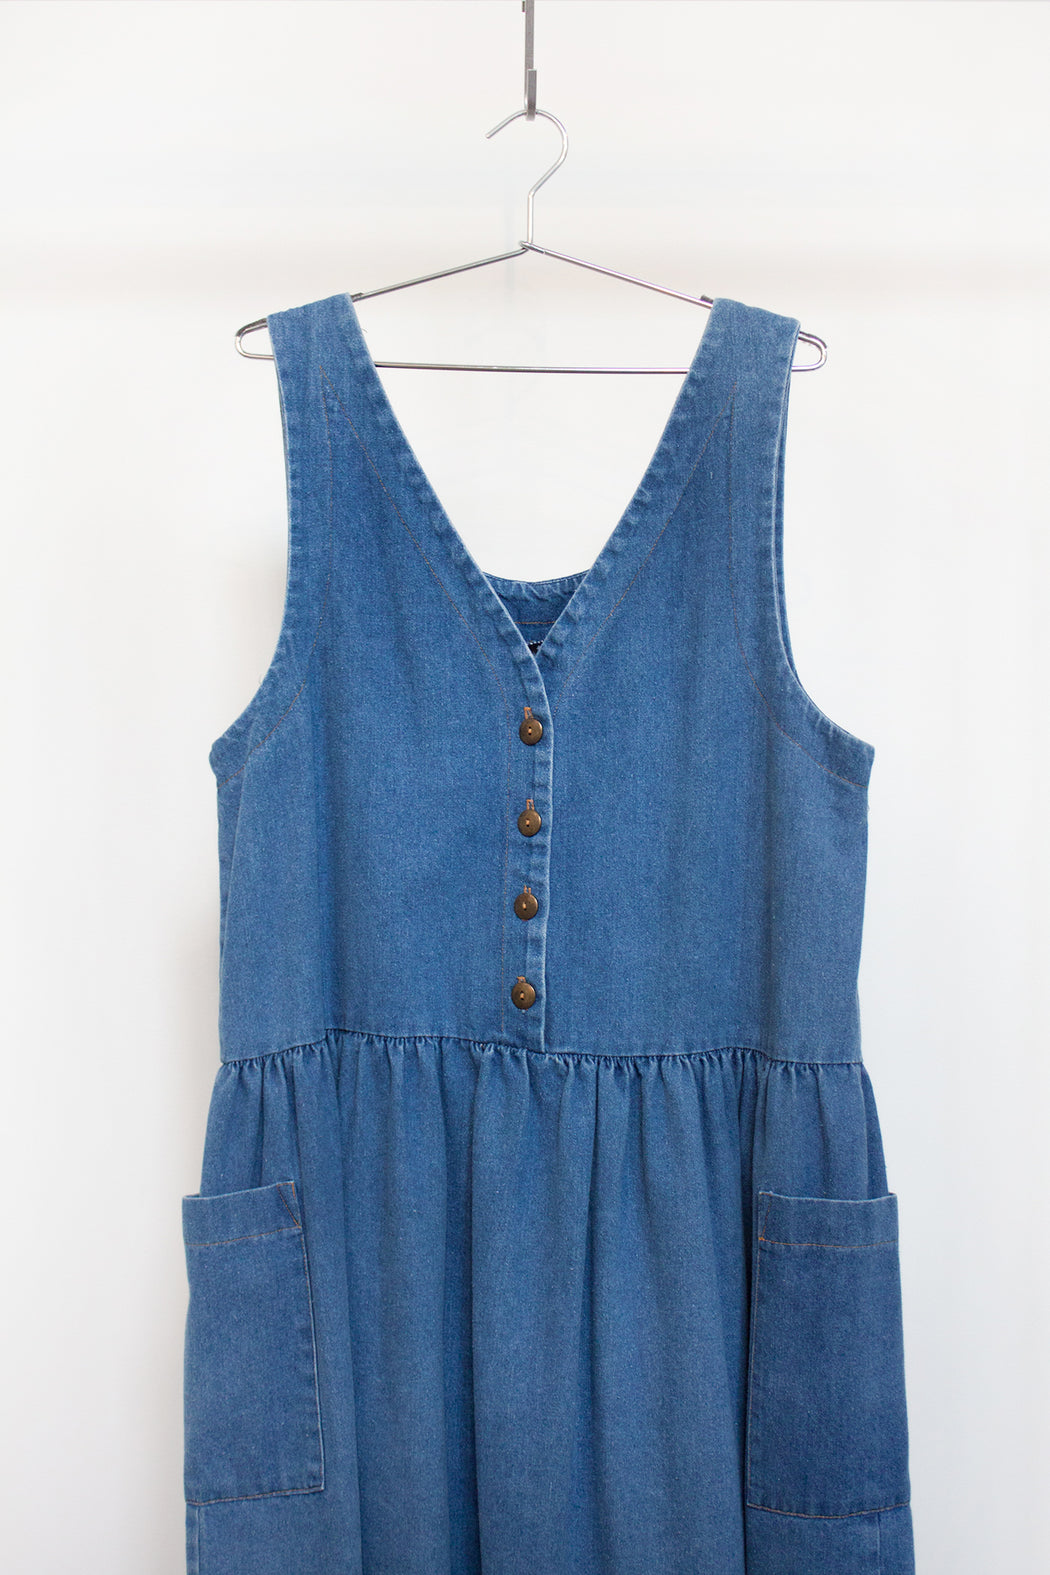 Vintage Denim Button Jumper